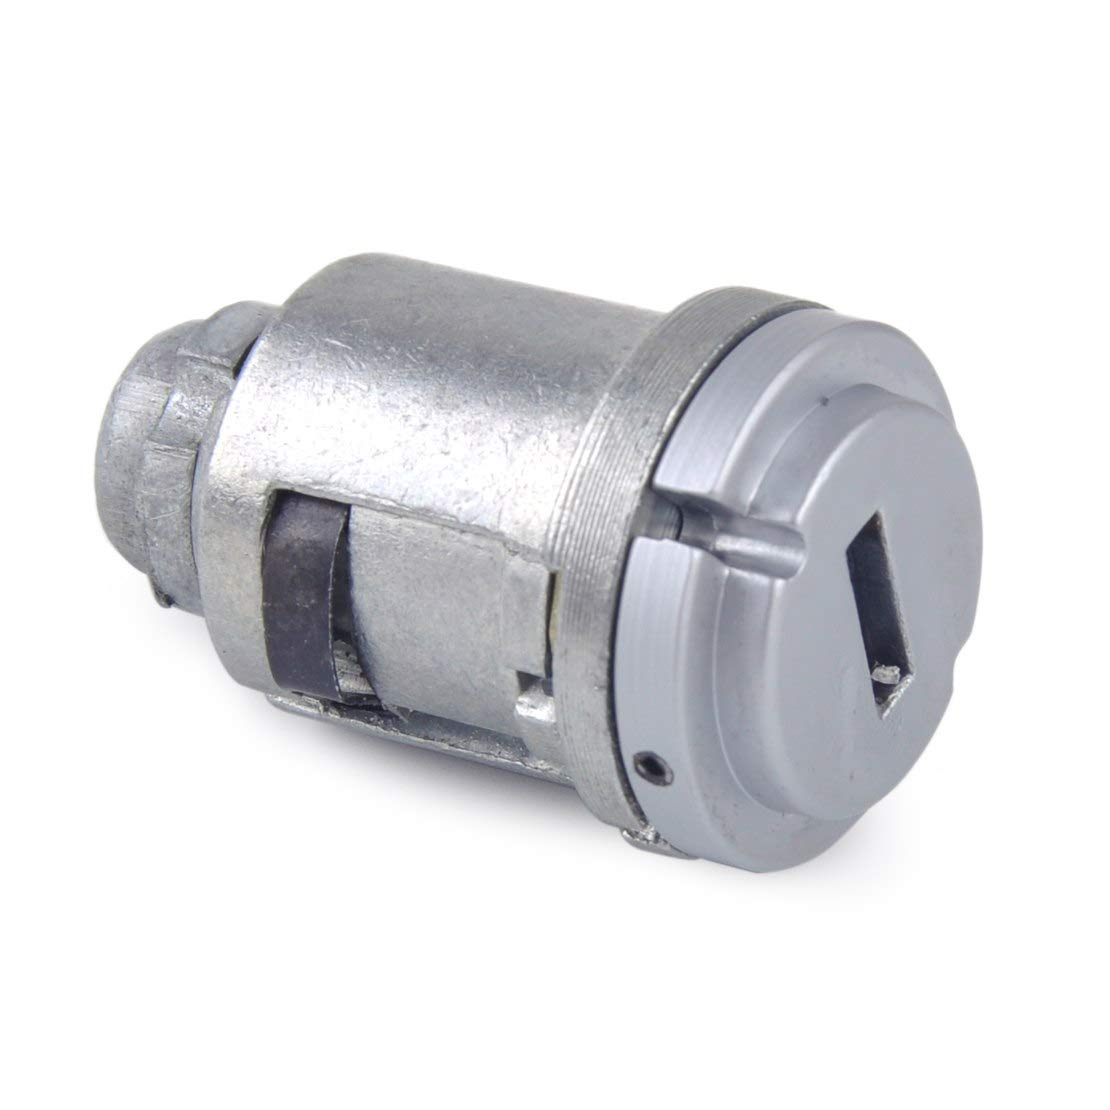 Ignition Lock Cylinder Switch with Key fit for Mercedes Benz W124